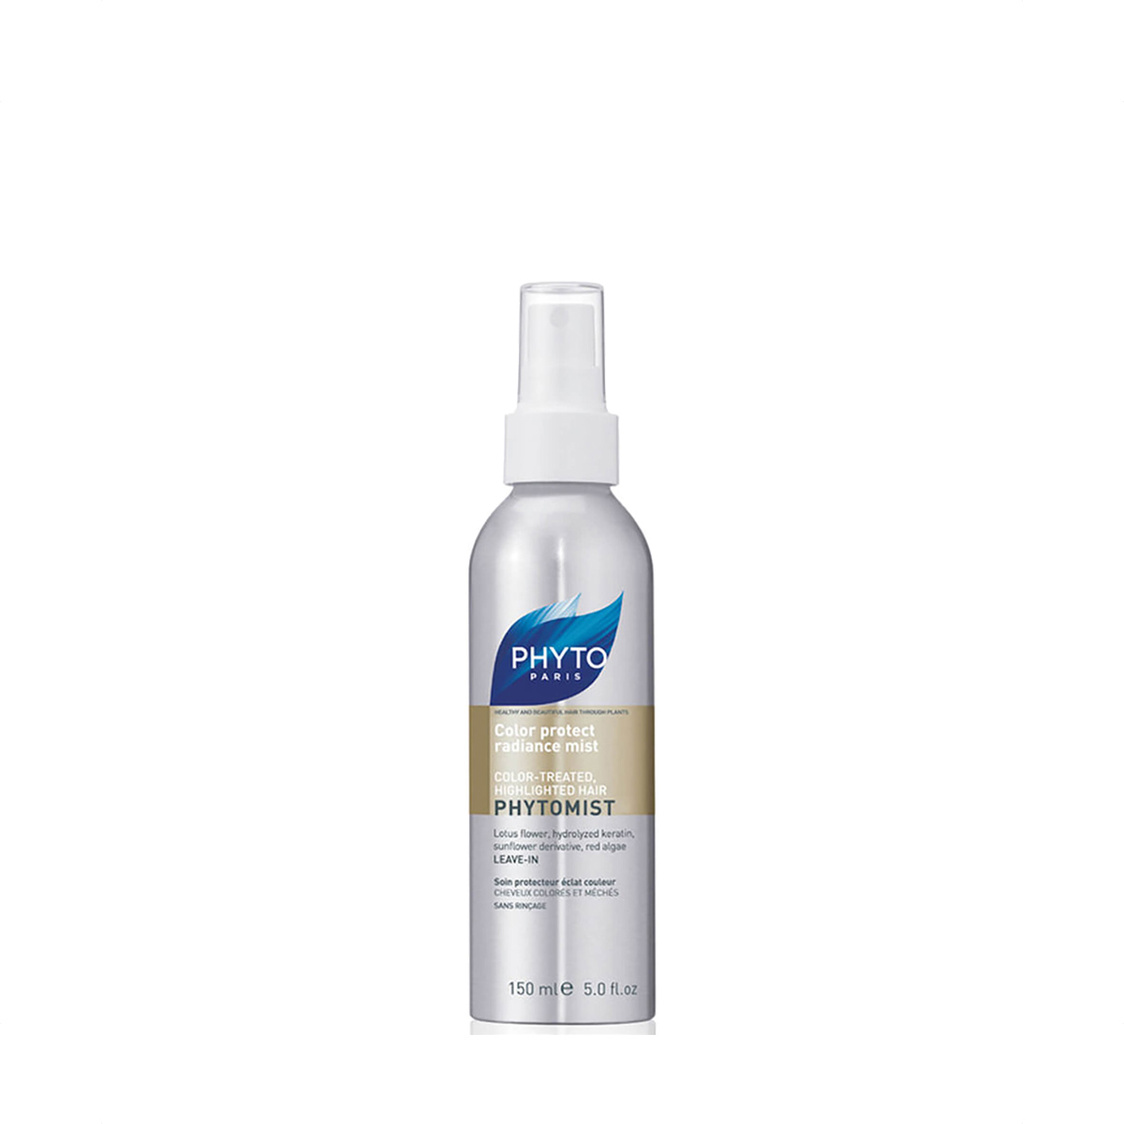 Phytomist Hydrating Hair Protection Spray 150ml P234